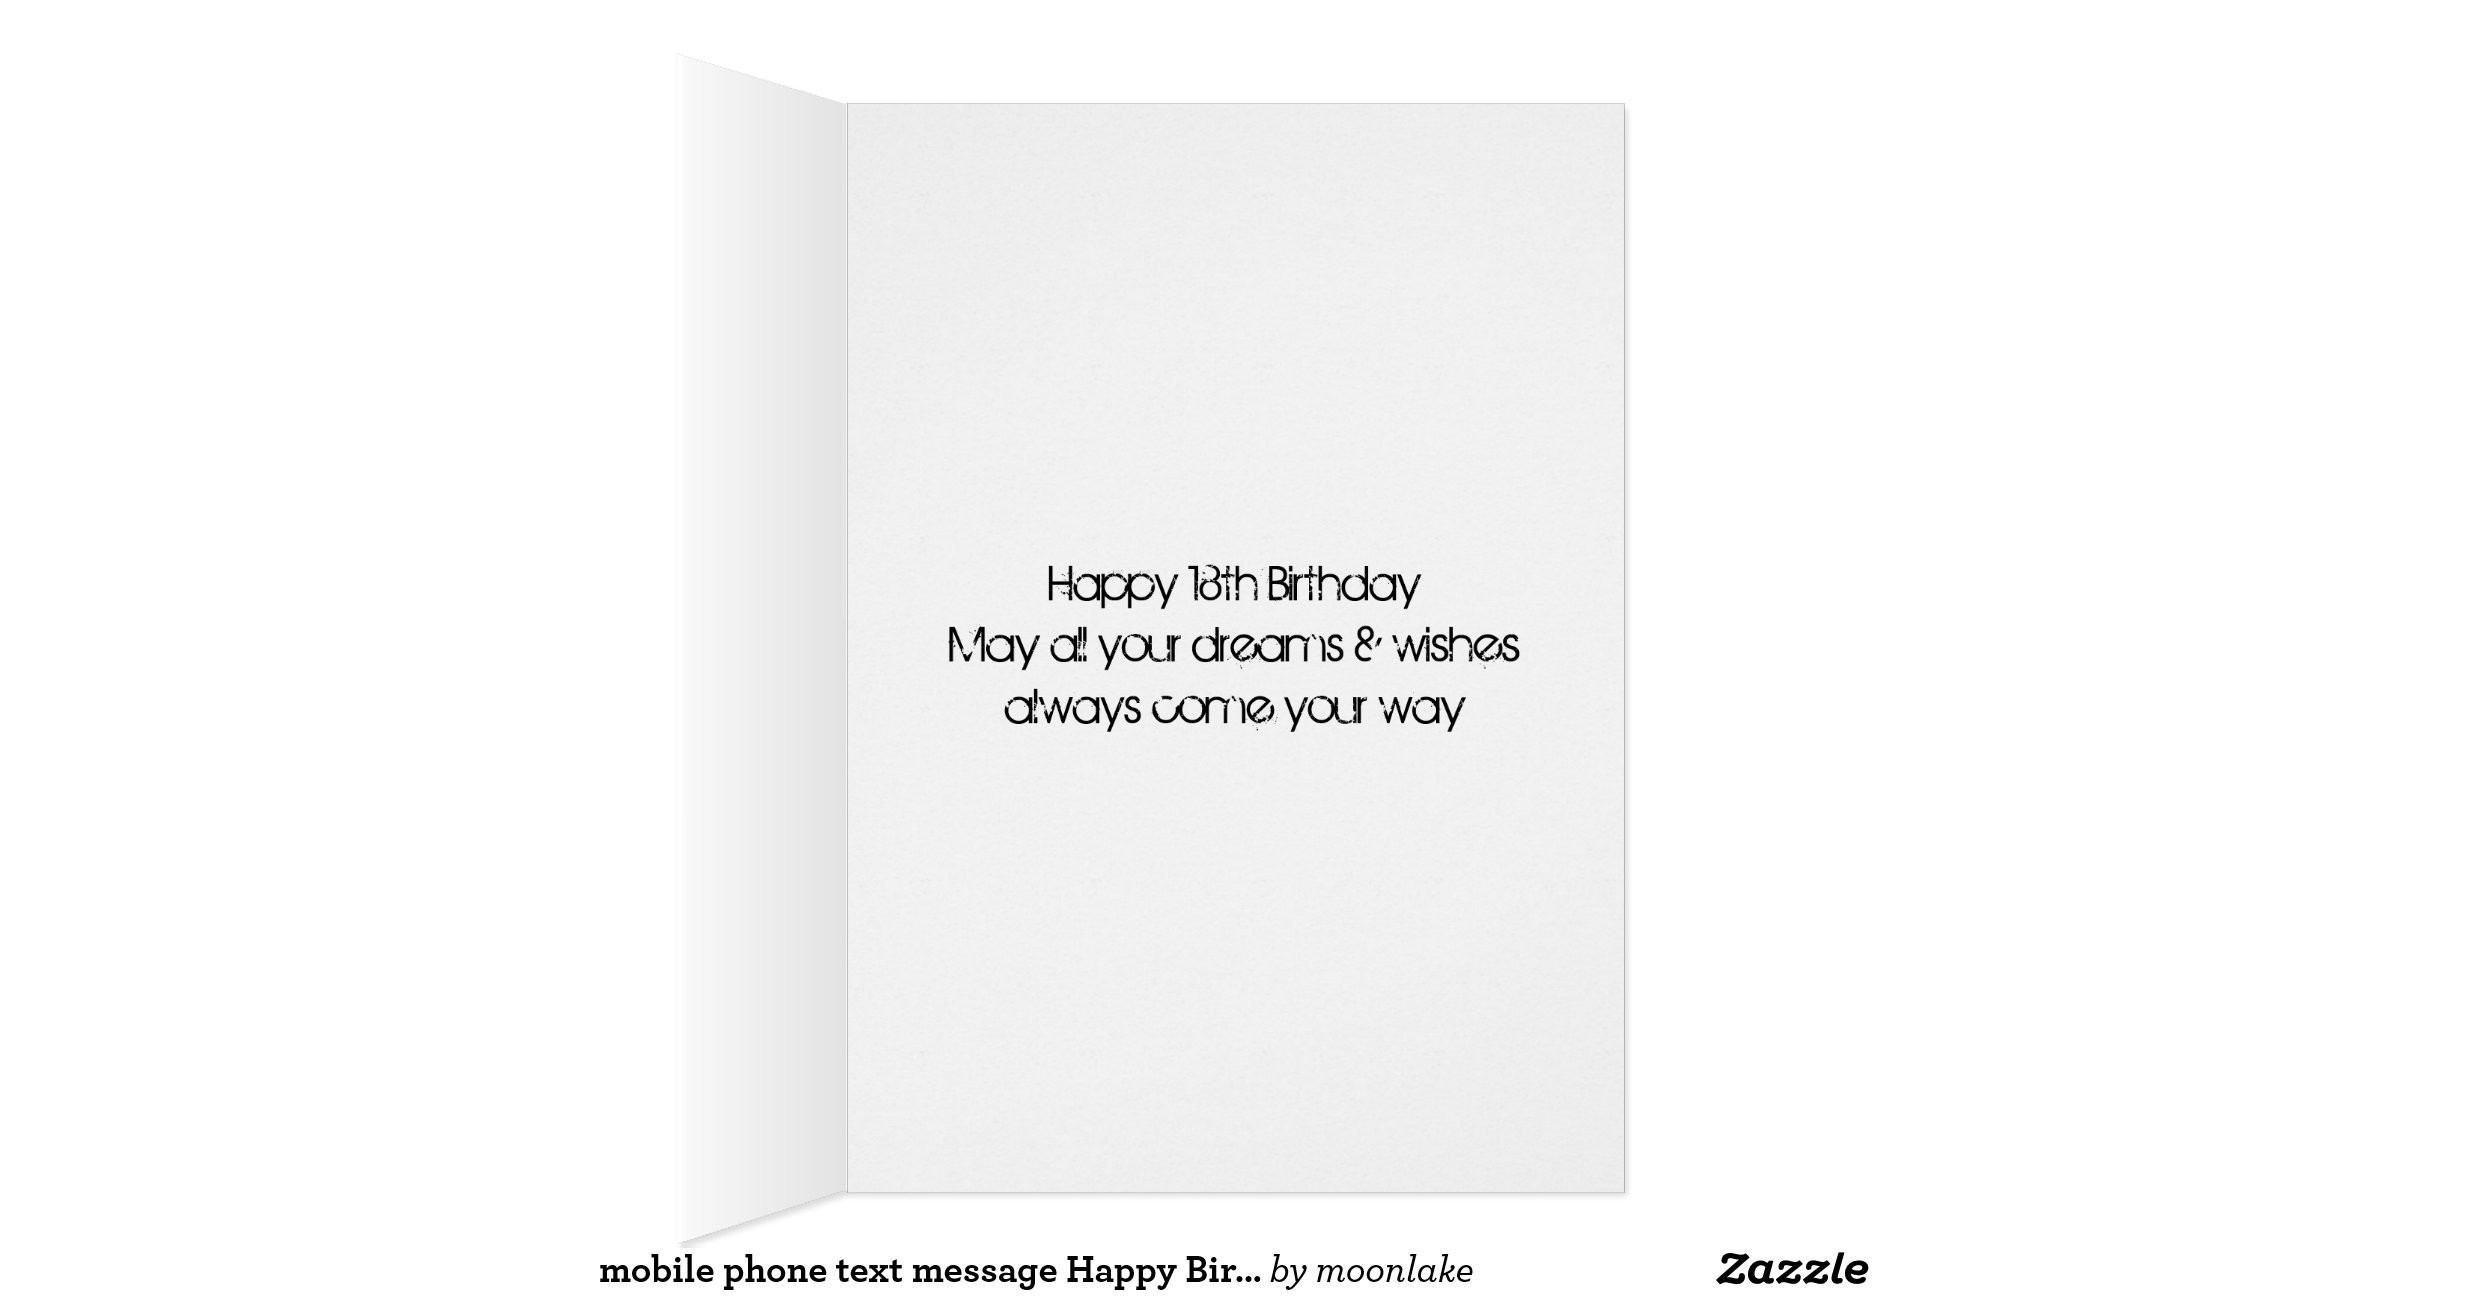 Text Message Birthday Cards  mobile phone text message Happy Birthday cellphone